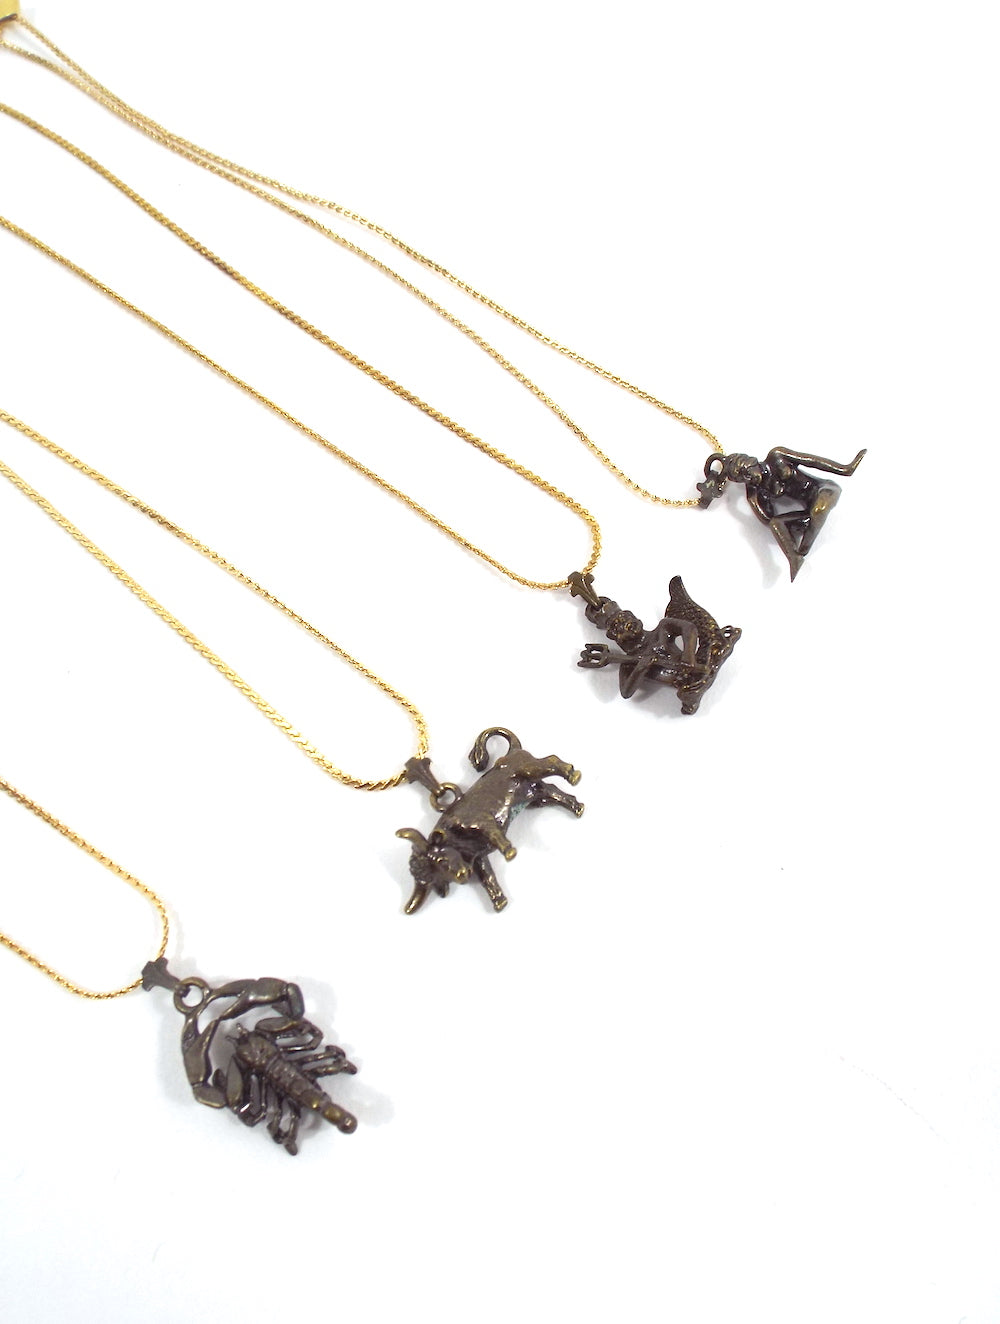 Vintage 70s Faux Gold and Bronze Zodiac Charm Necklace - Scorpio, Taurus, Aquarius, Virgo